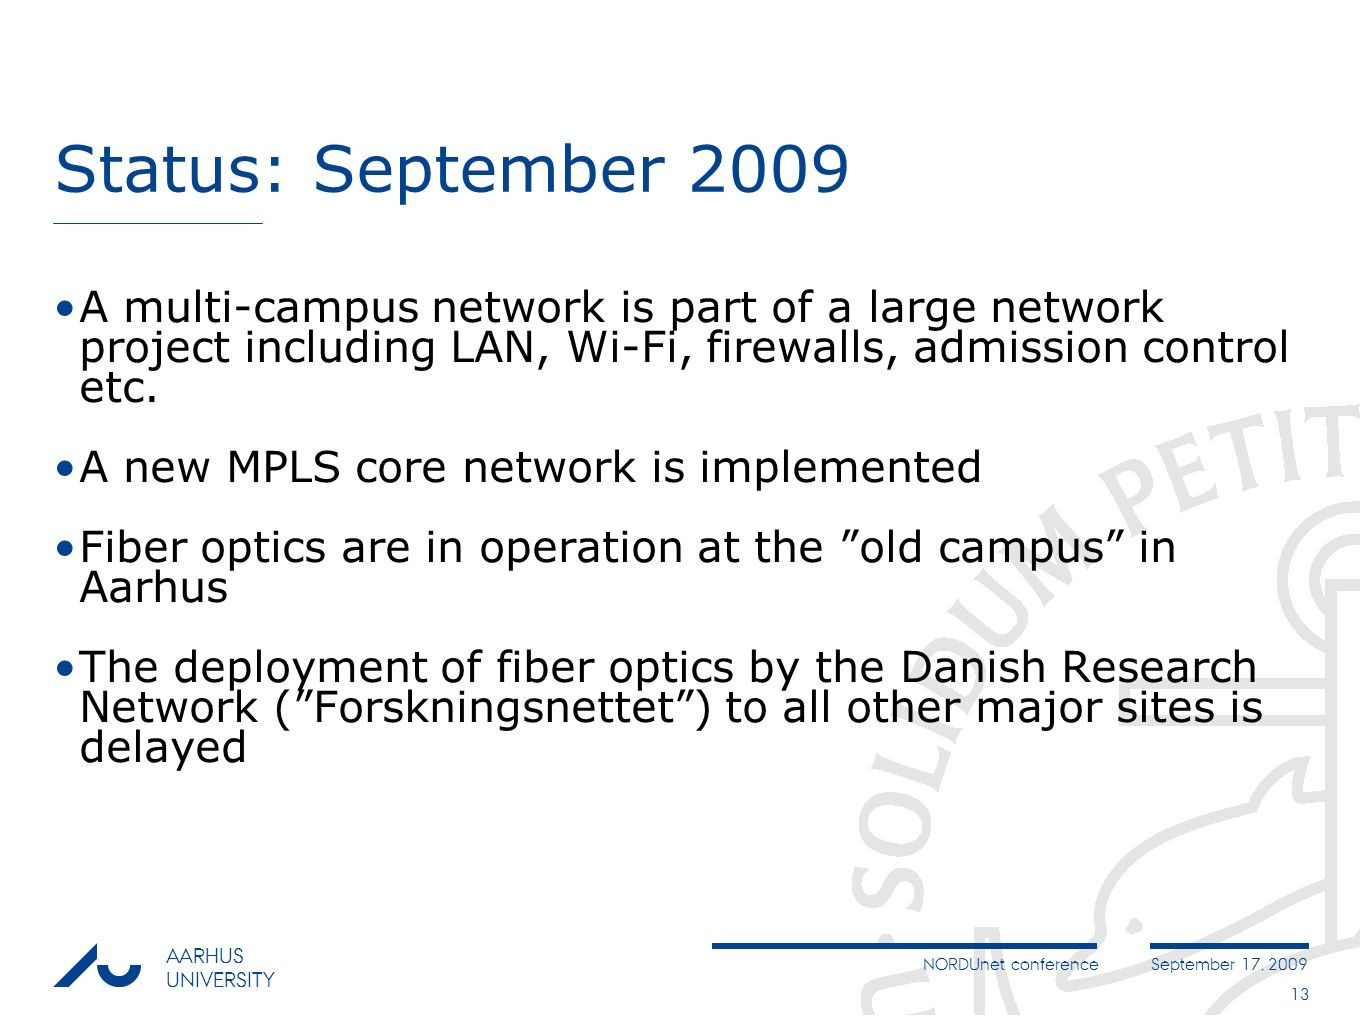 NORDUnet conferenceSeptember 17, 2009 AARHUS UNIVERSITY 13 Status: September 2009 A multi-campus network is part of a large network project including LAN, Wi-Fi, firewalls, admission control etc.